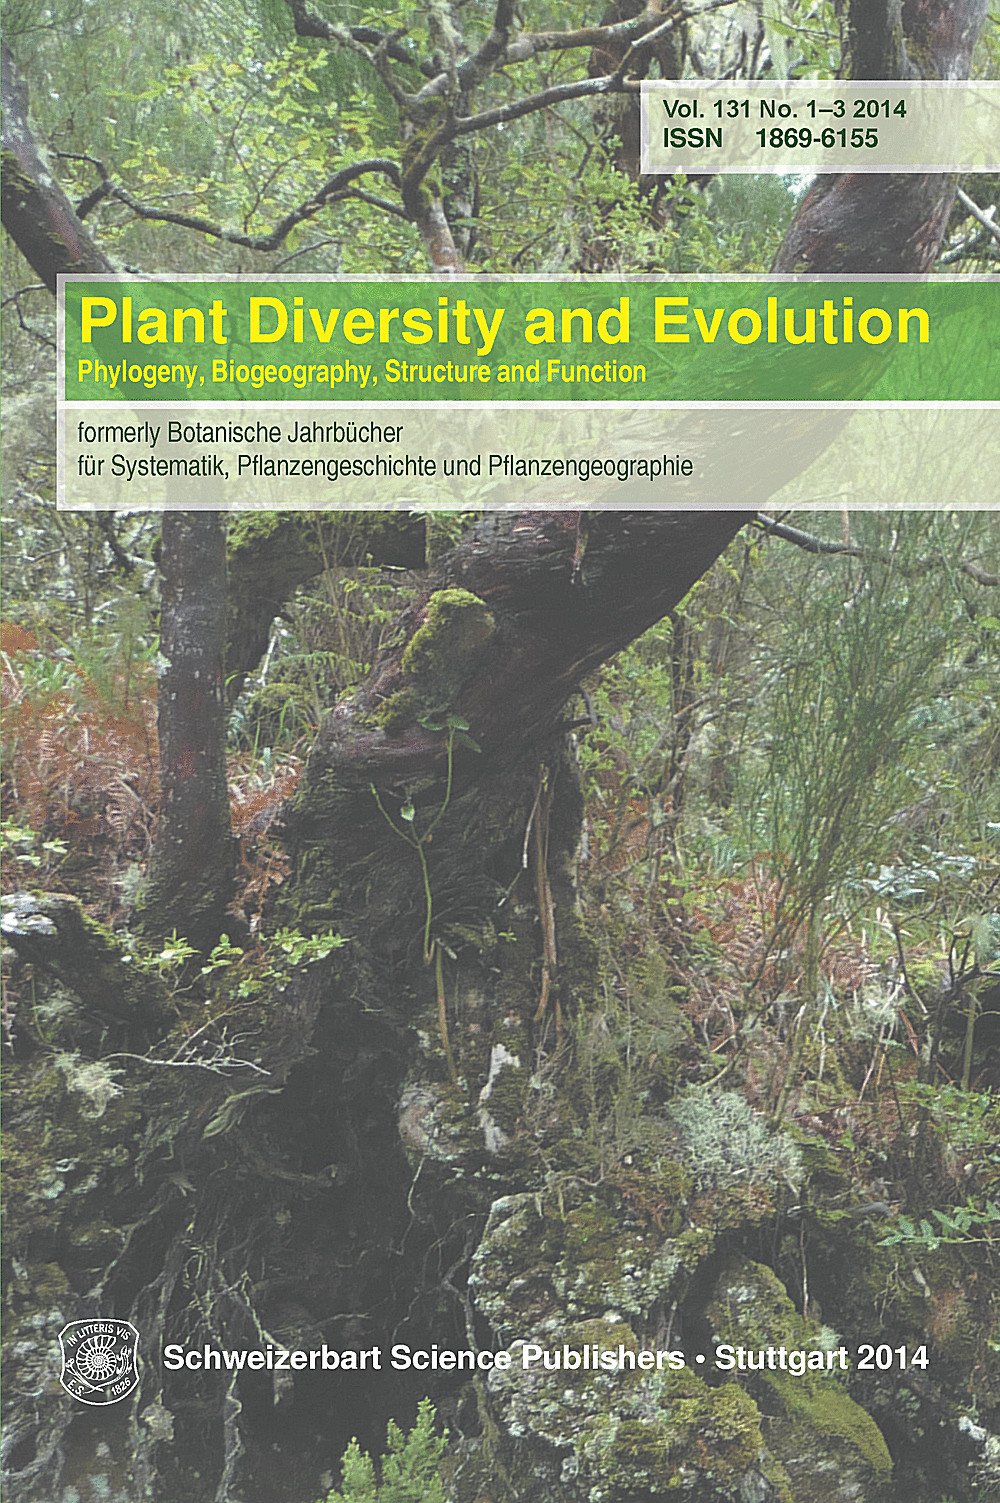 Plant diversity and evolution